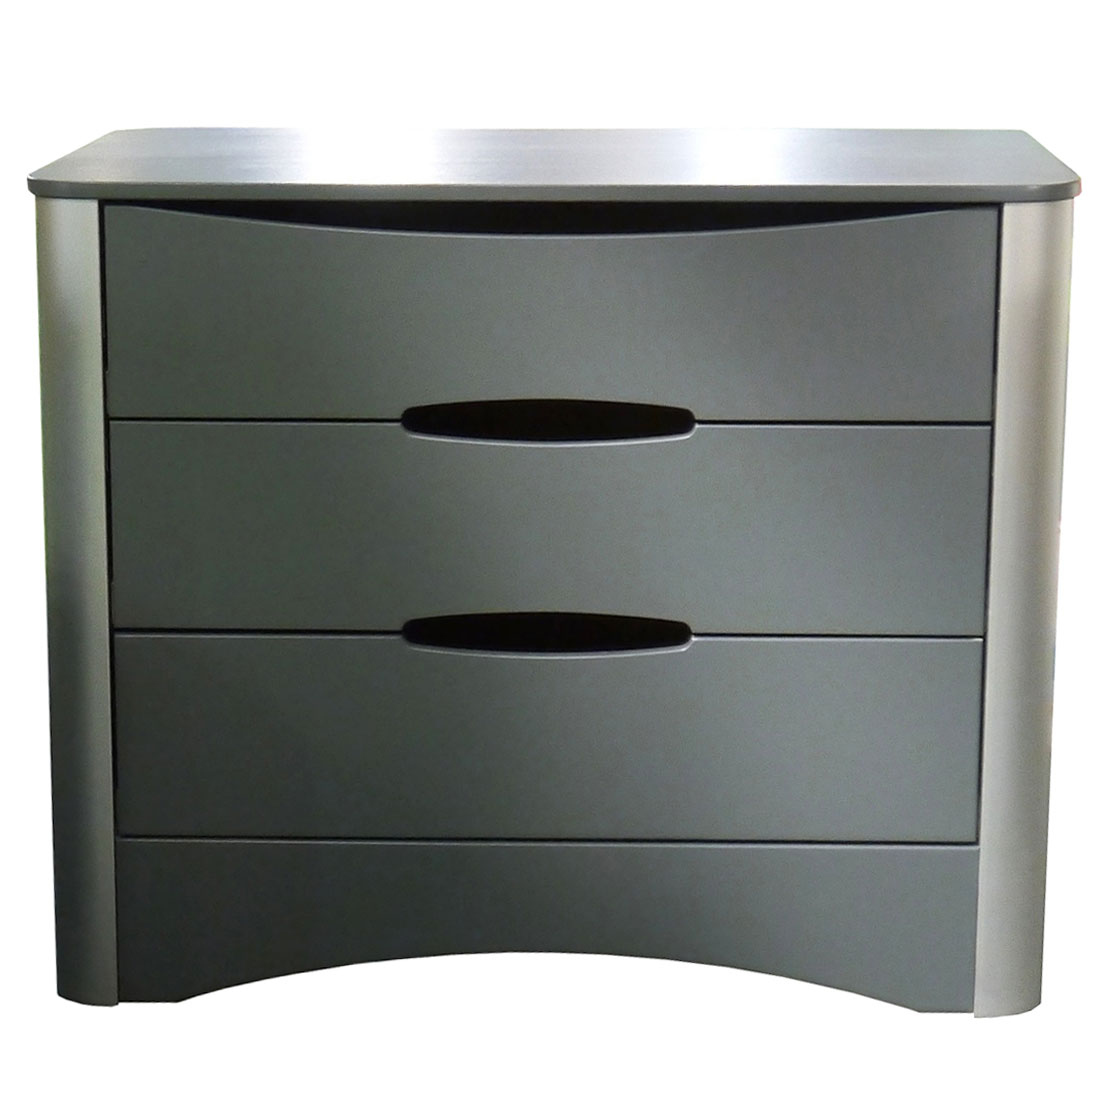 Commode Fusion Couleur - Gris basalte